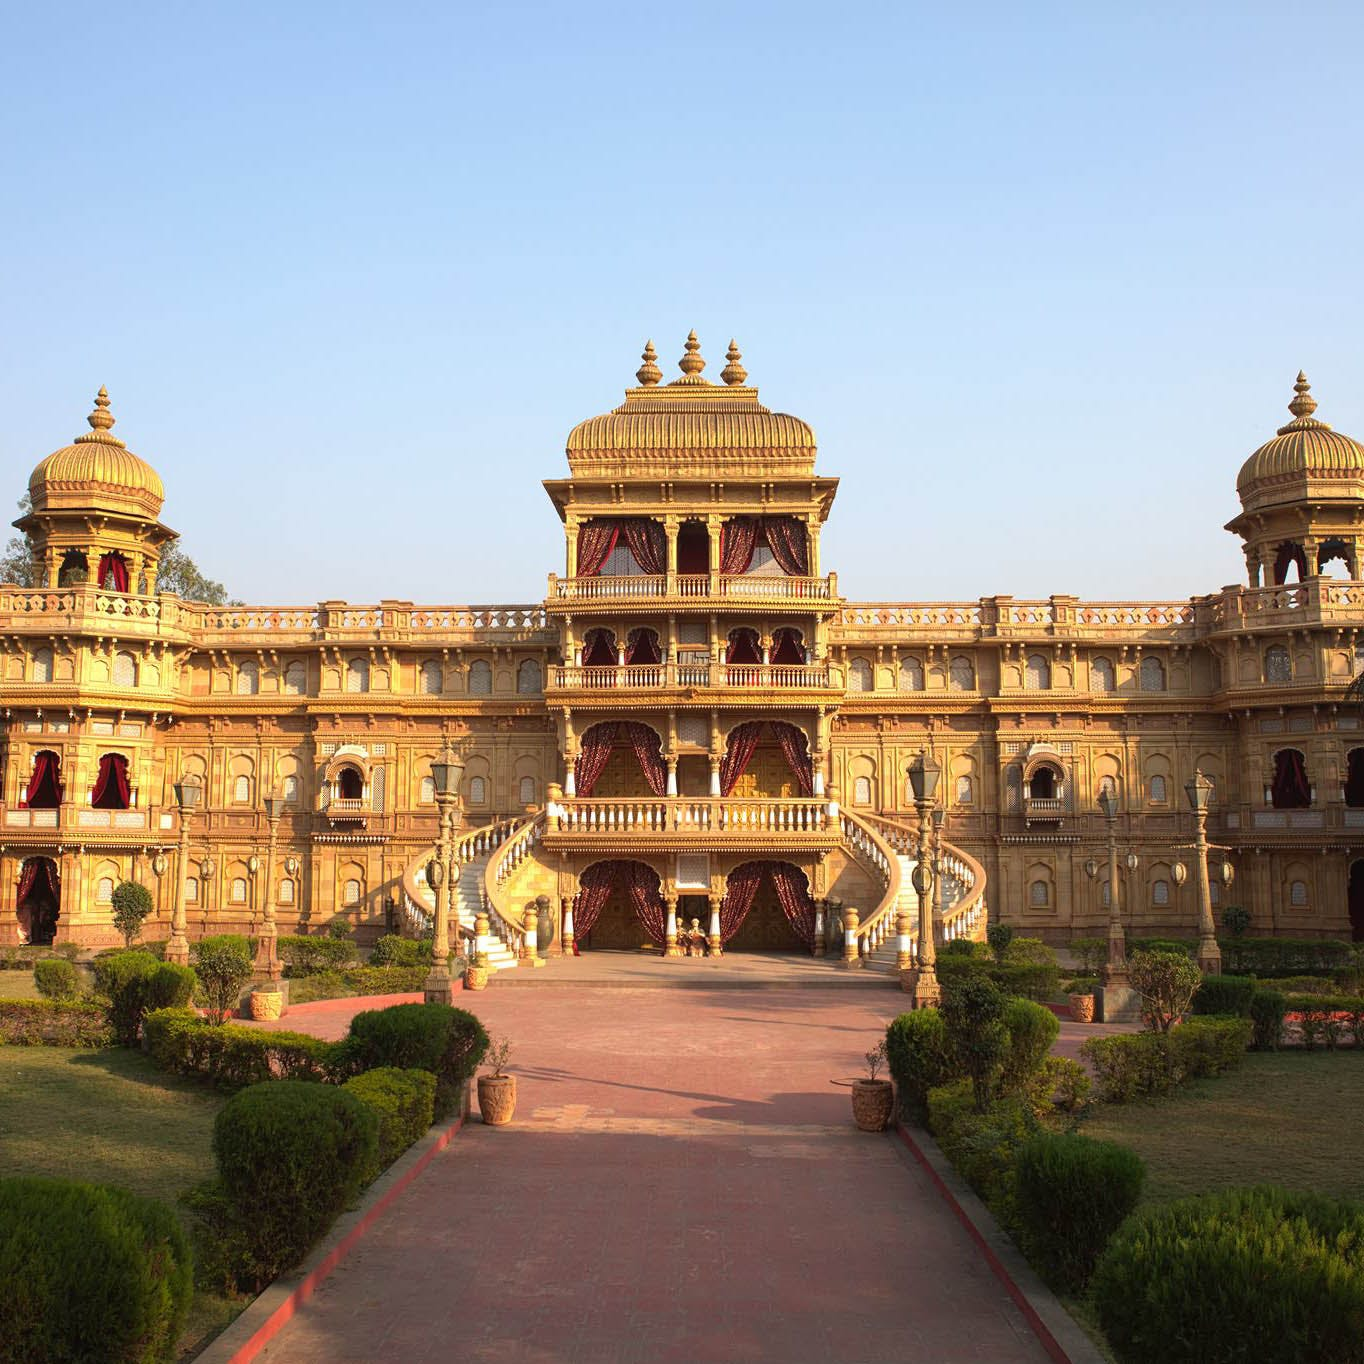 Landmark,Building,Palace,Architecture,Estate,Official residence,Classical architecture,Stately home,Mansion,City